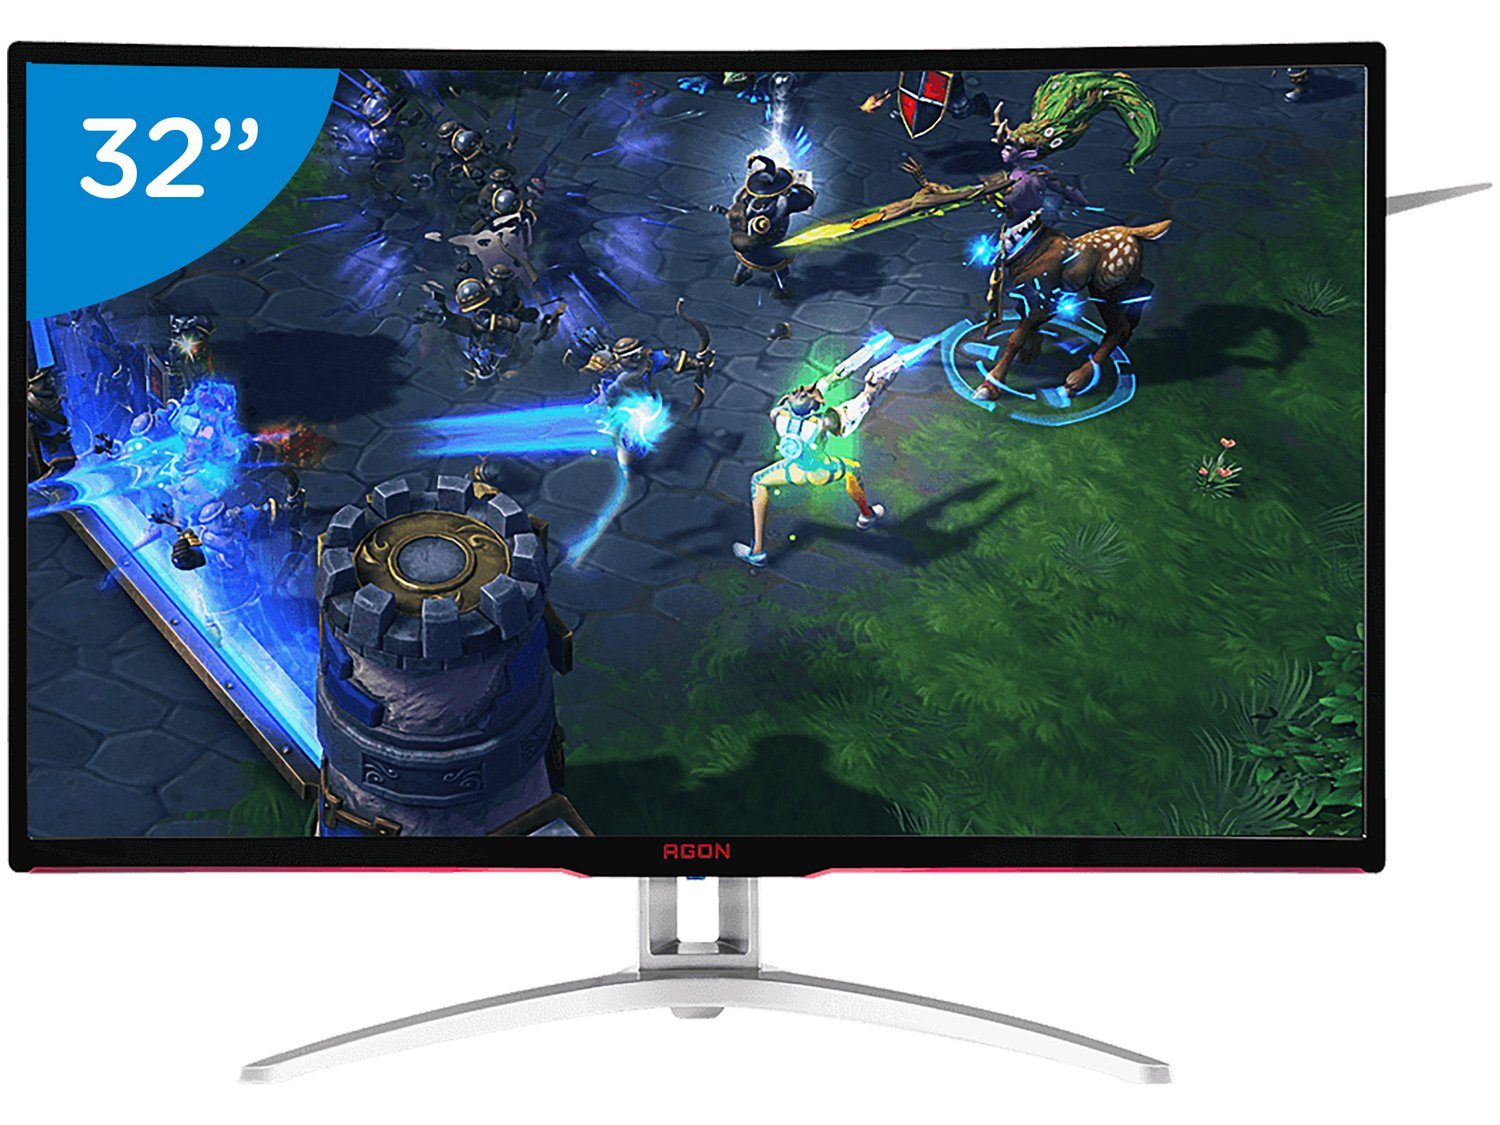 Foto 1 - Monitor Gamer AOC LCD Curvo 31,5 IPS Full HD - Widescreen Agon